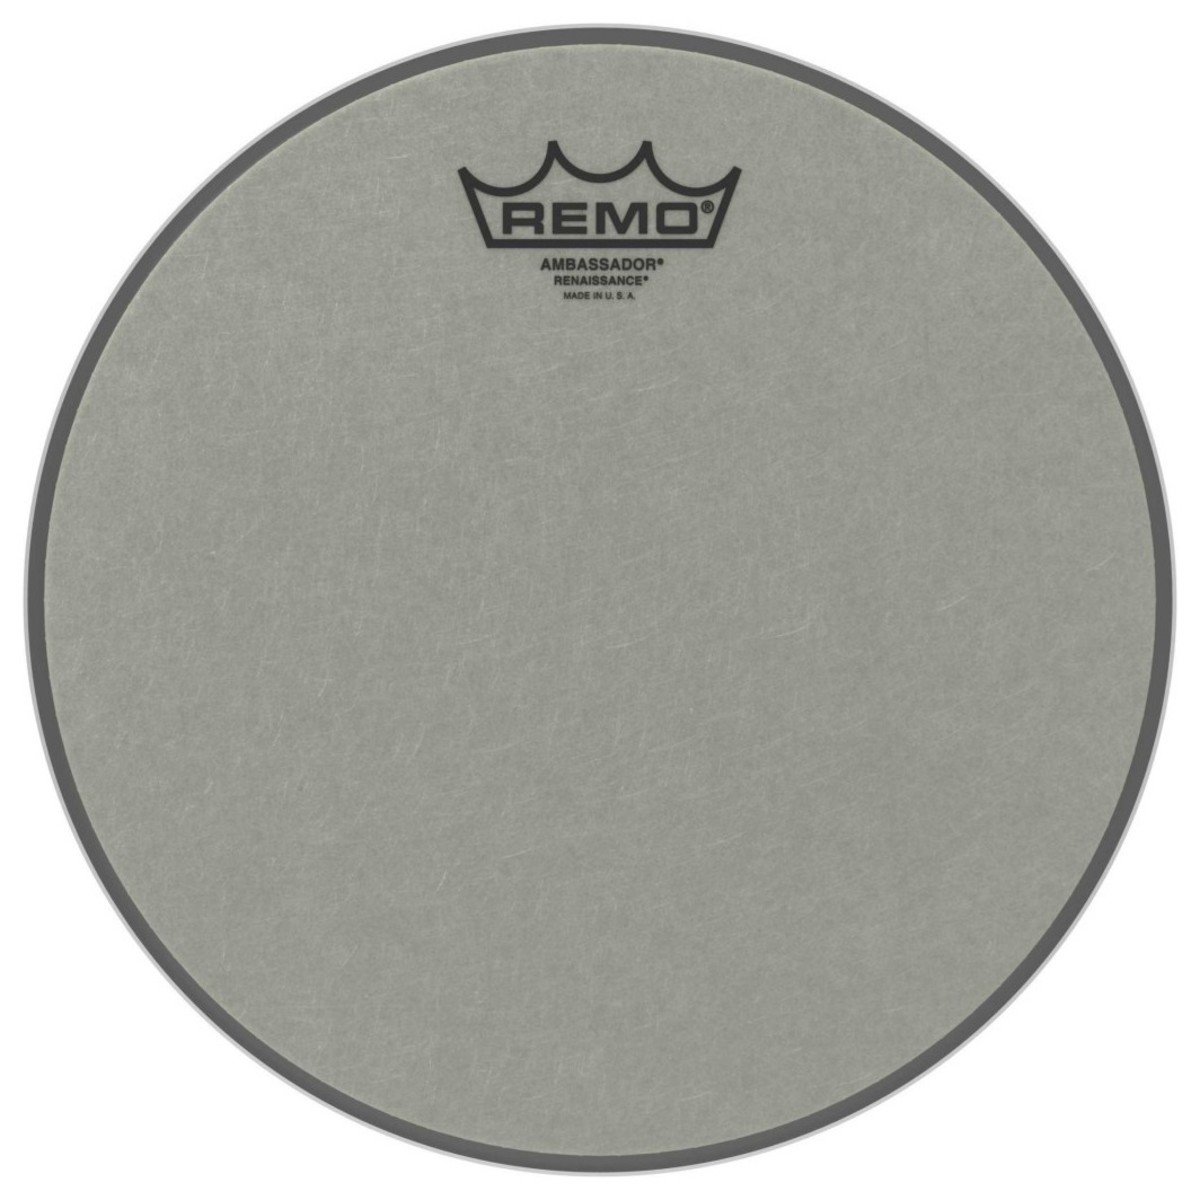 Click to view product details and reviews for Remo Ambassador Renaissance 18 Bass Drum Head.